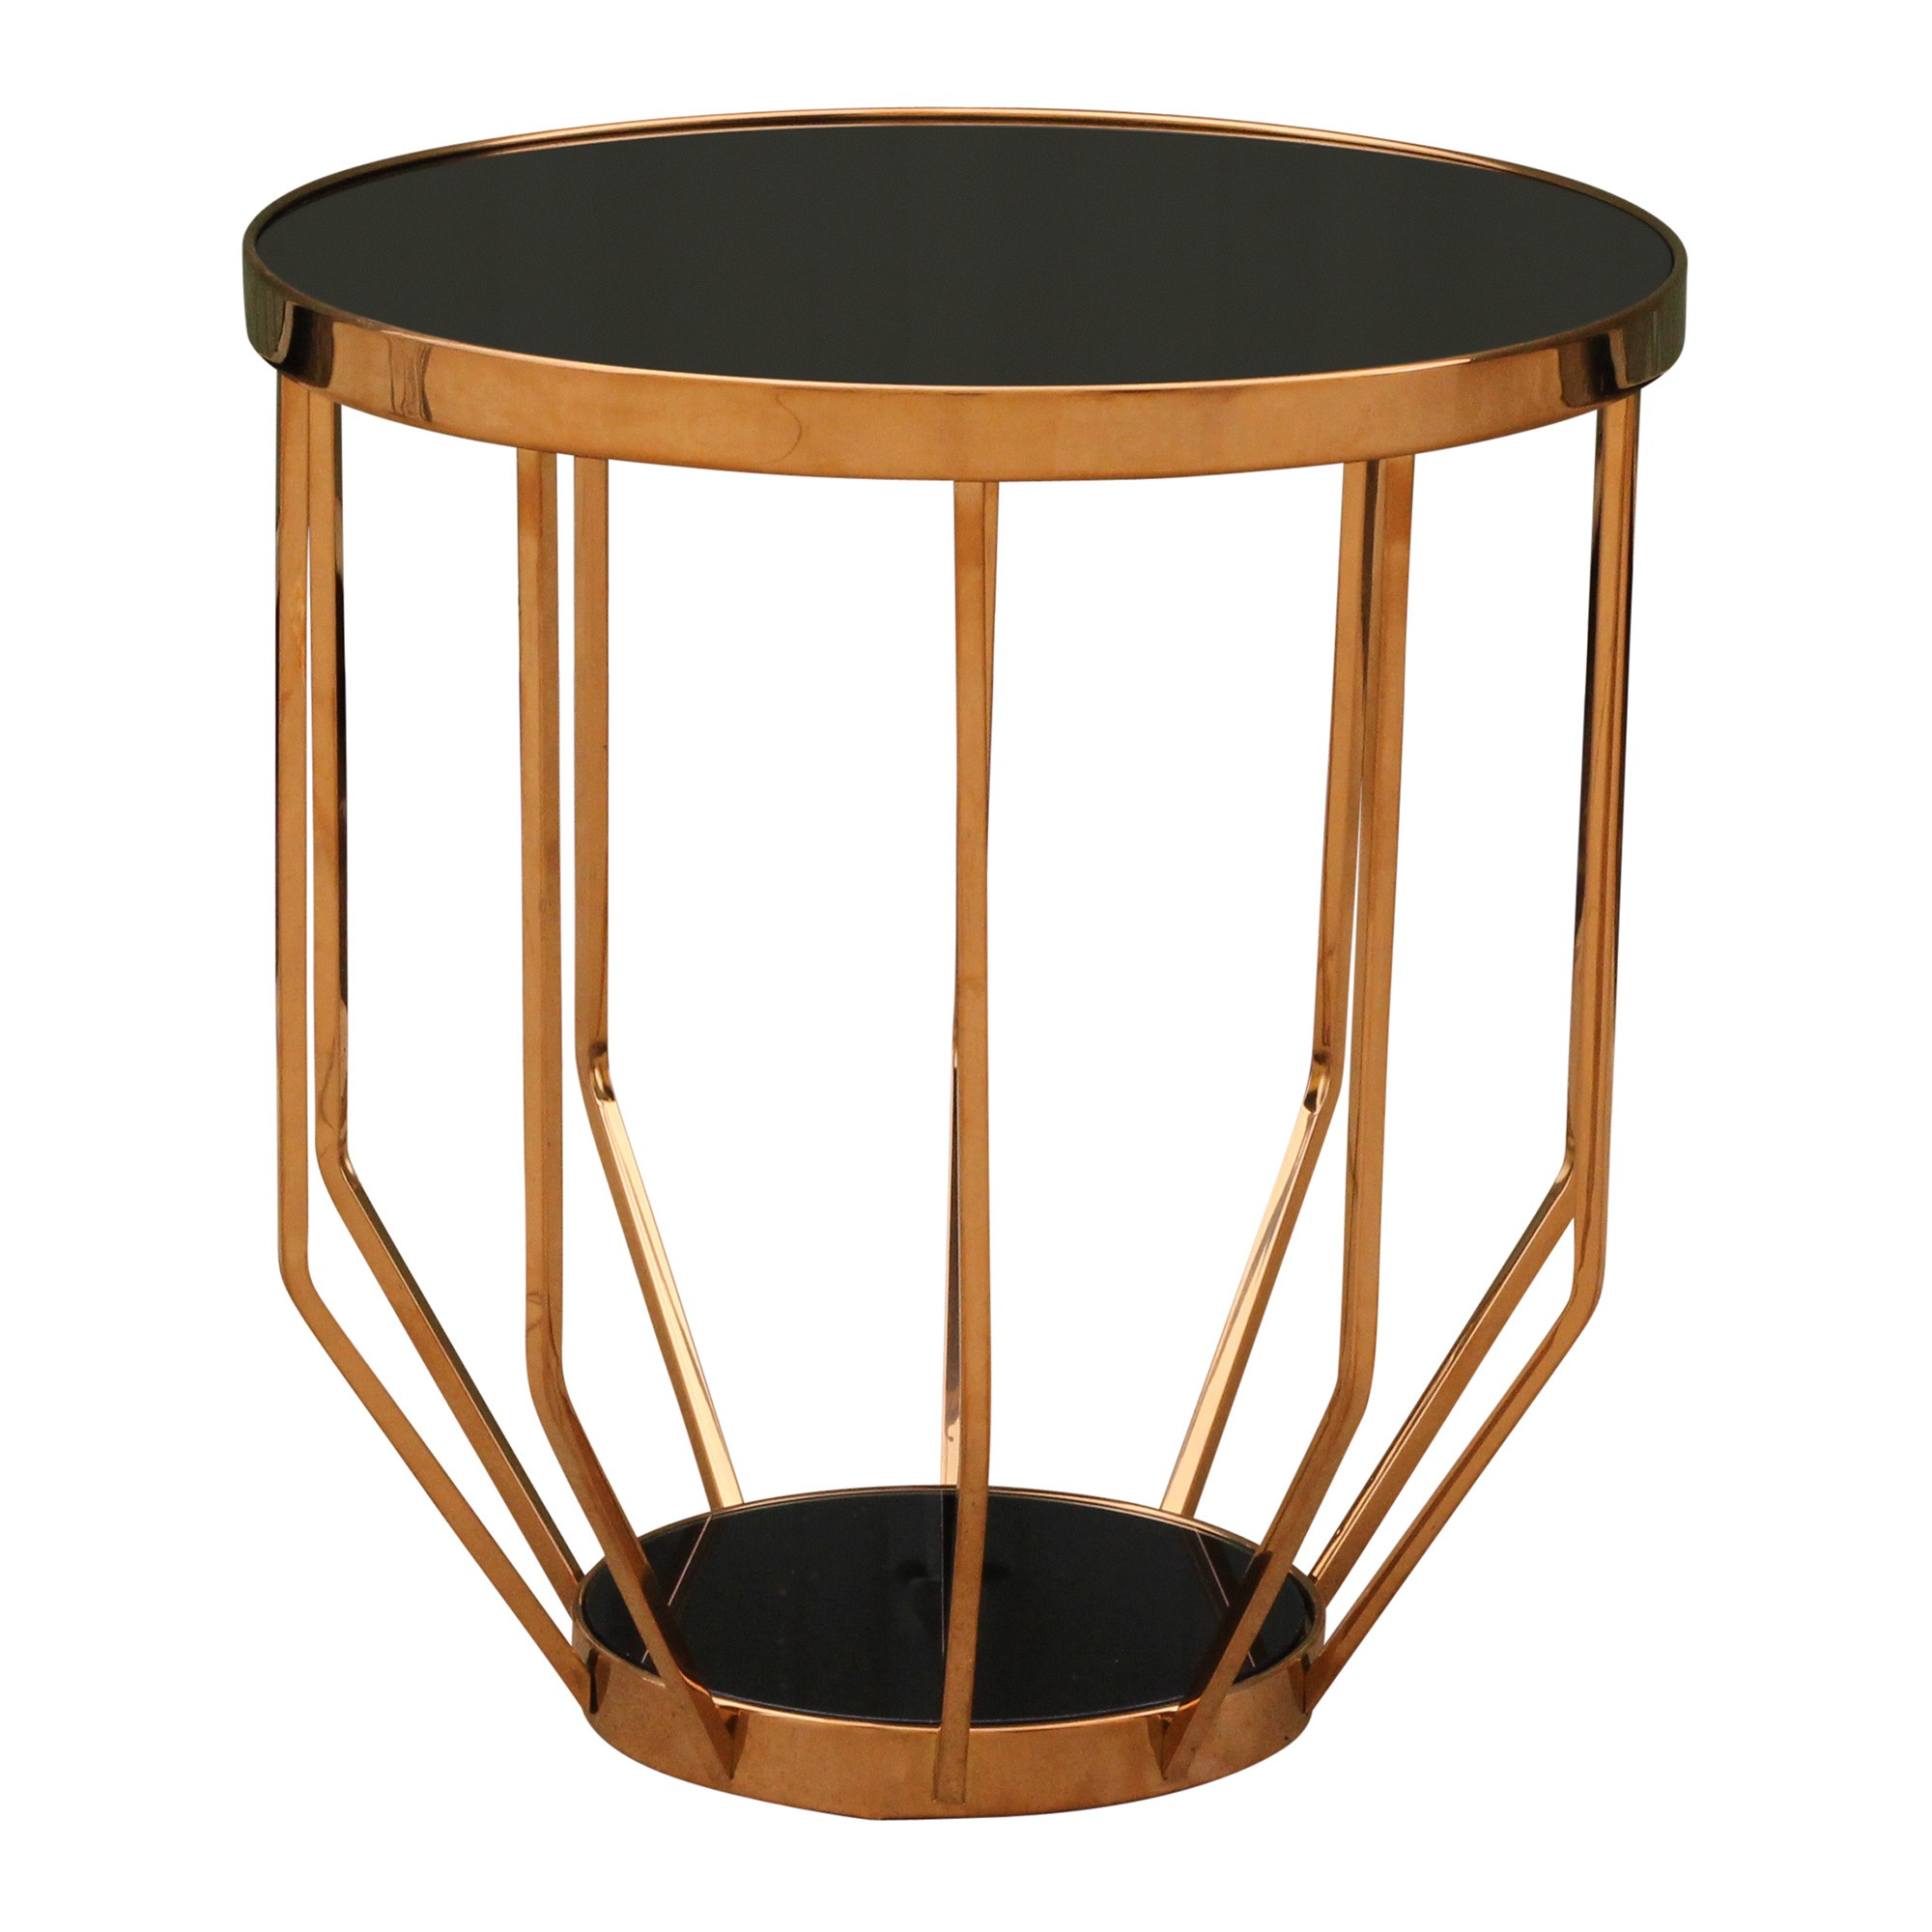 Marina Glass Top Stainless Steel Round Side Table, Rose Gold / Black